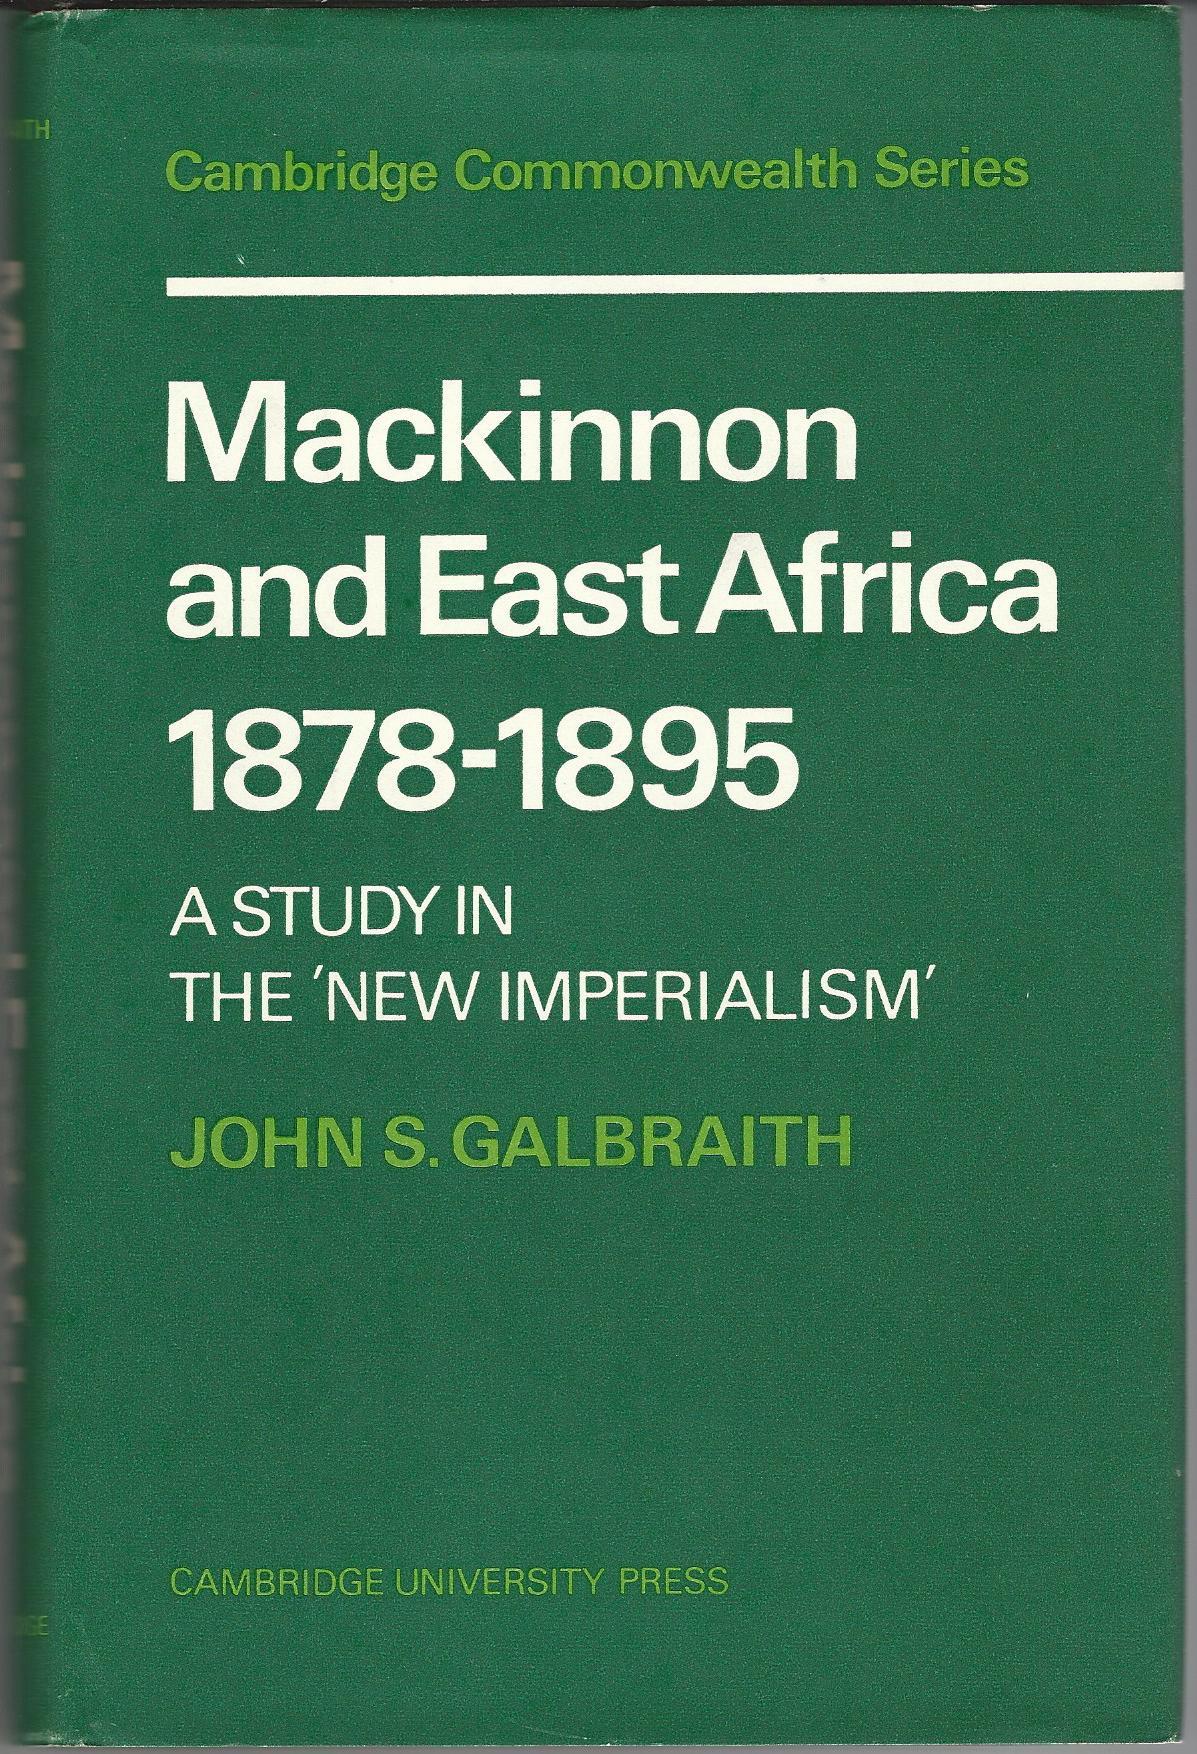 Image for Mackinnon and East Africa 1878-1895: A Study in the 'New Imperialism'